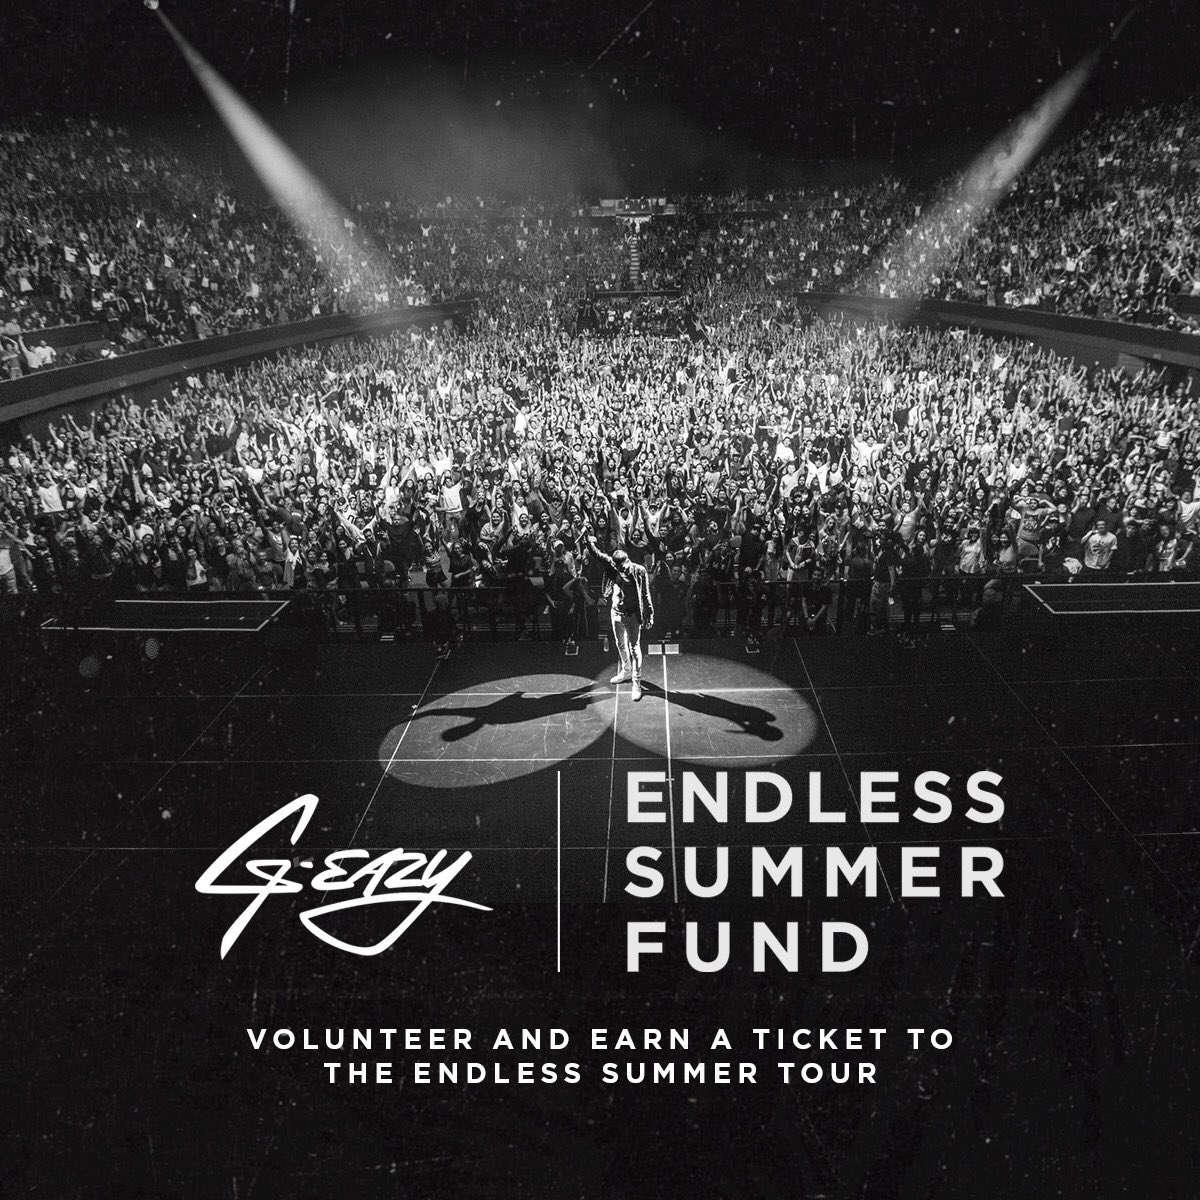 Help support a great cause @LarkinStreet and earn free tickets to The Endless Summer tour: bit.ly/EndlessSummerF…